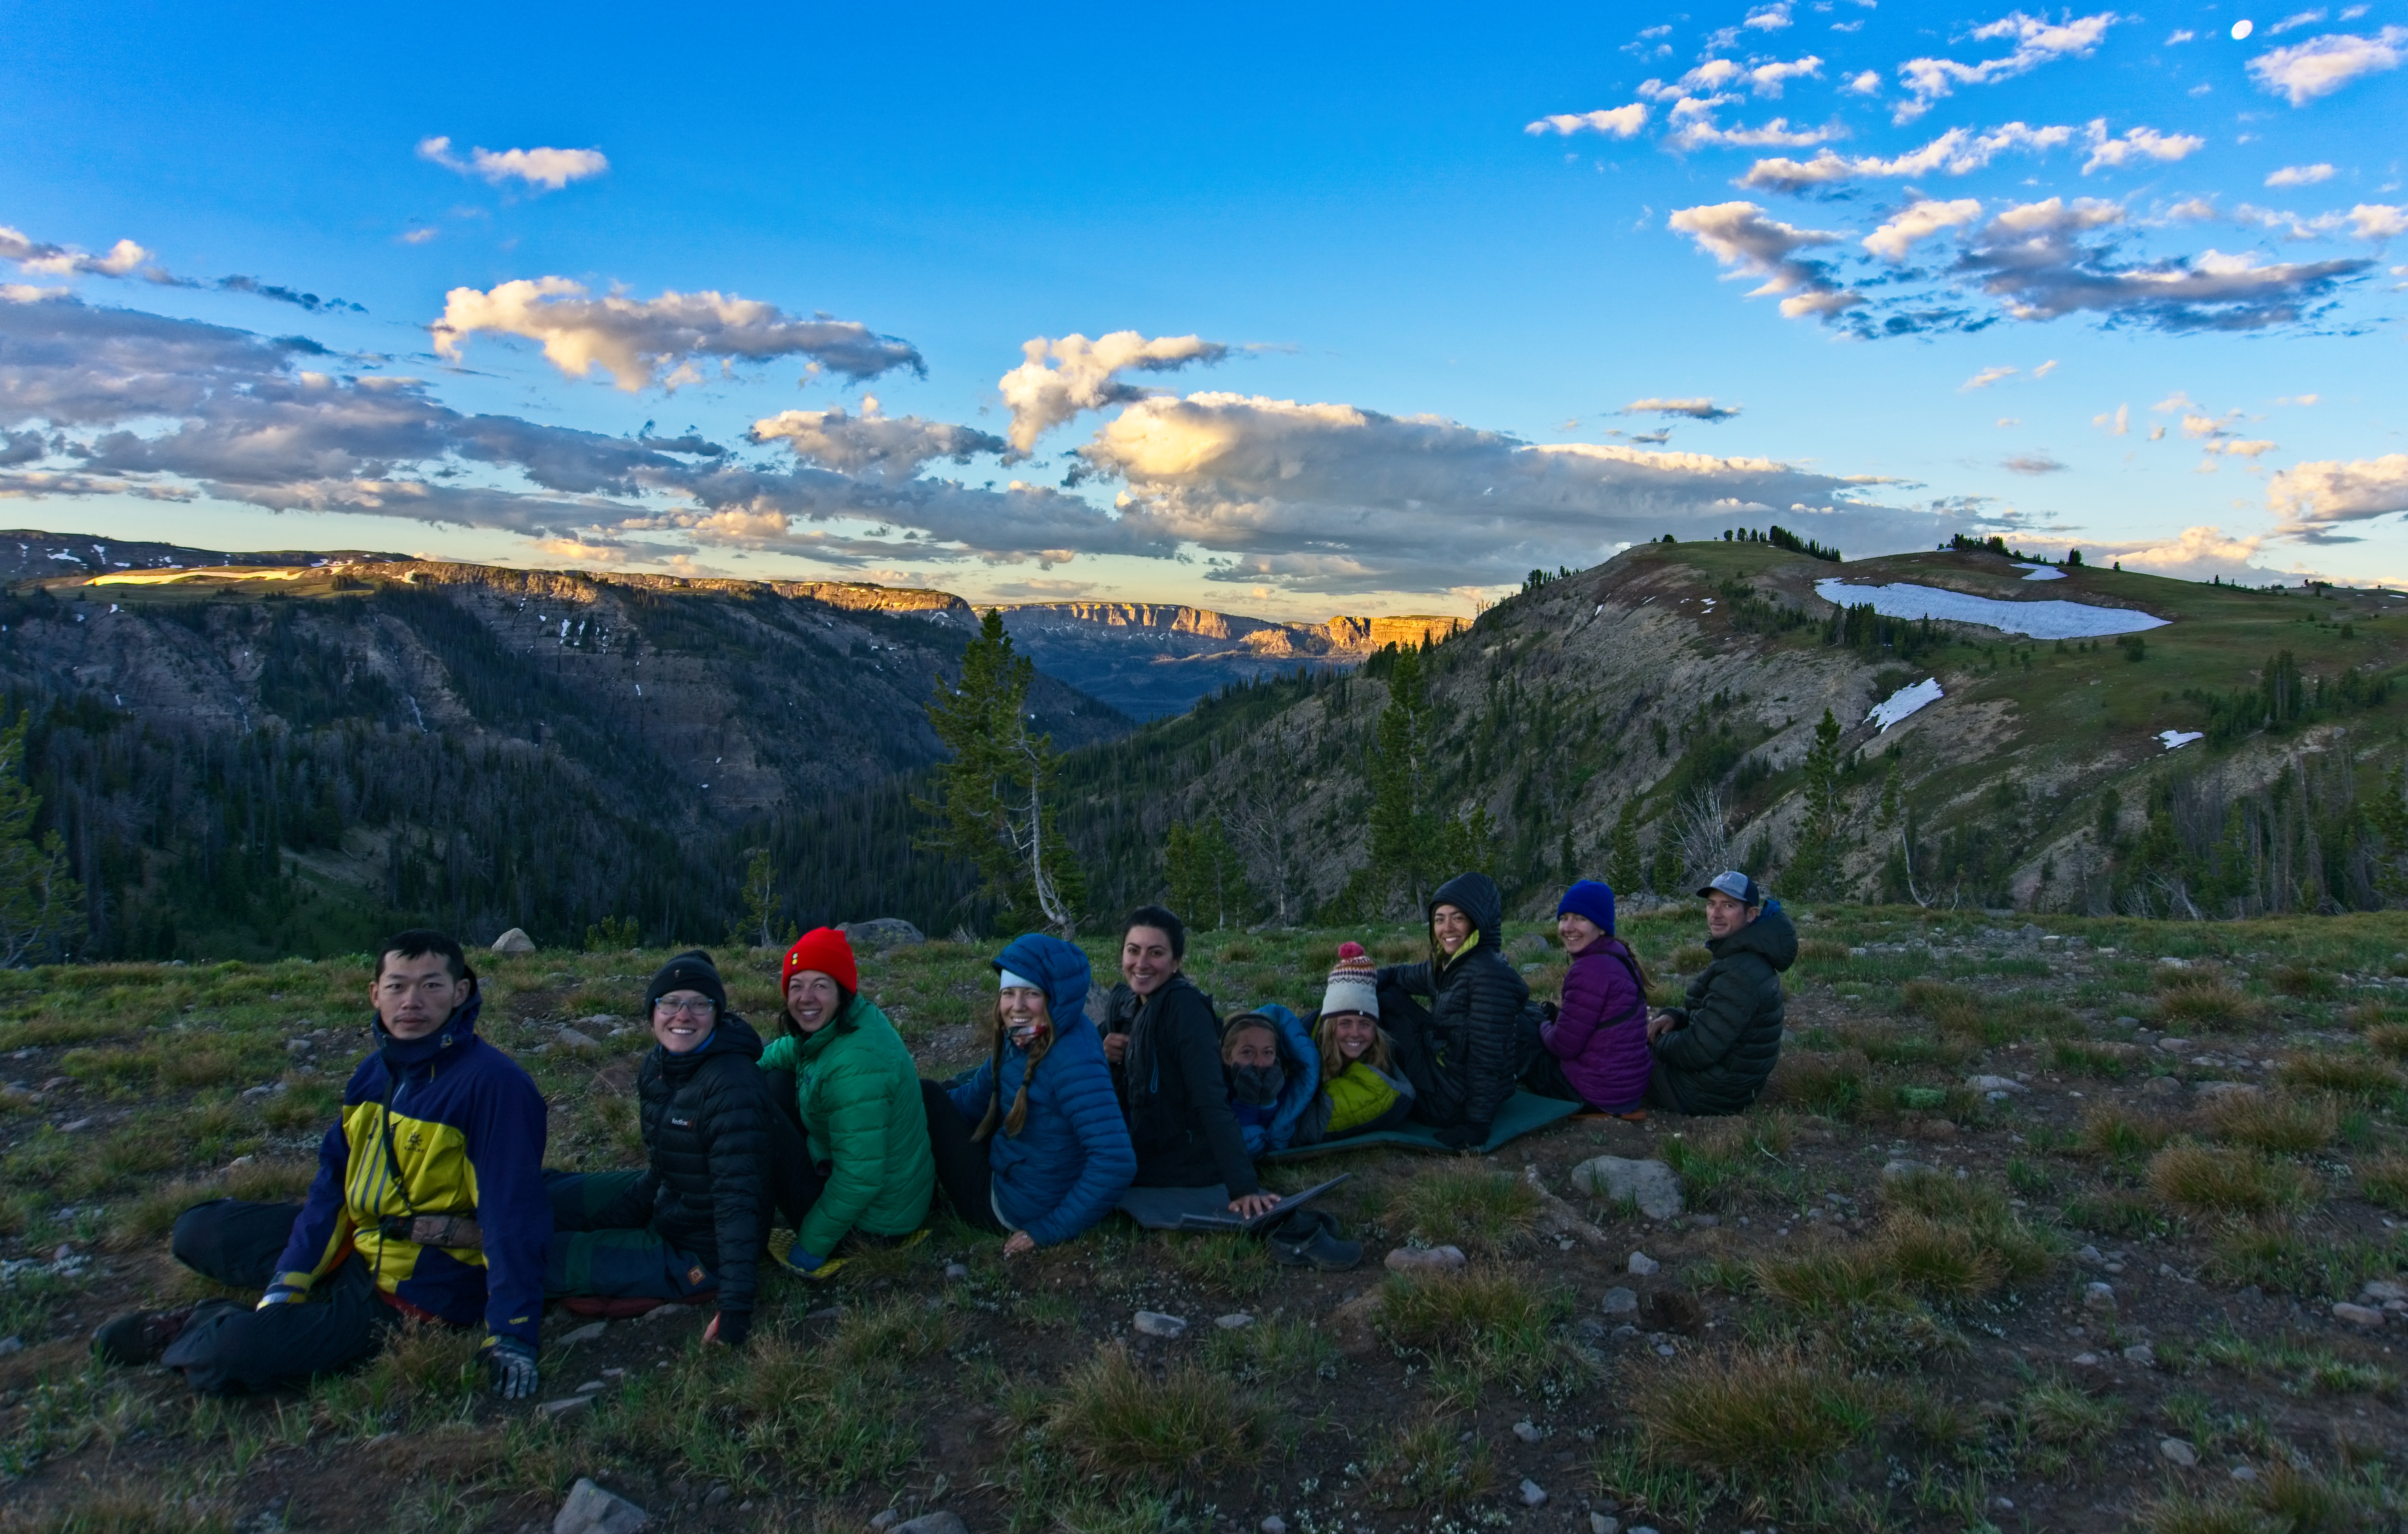 ten students sit in a line in the mountains at sunset